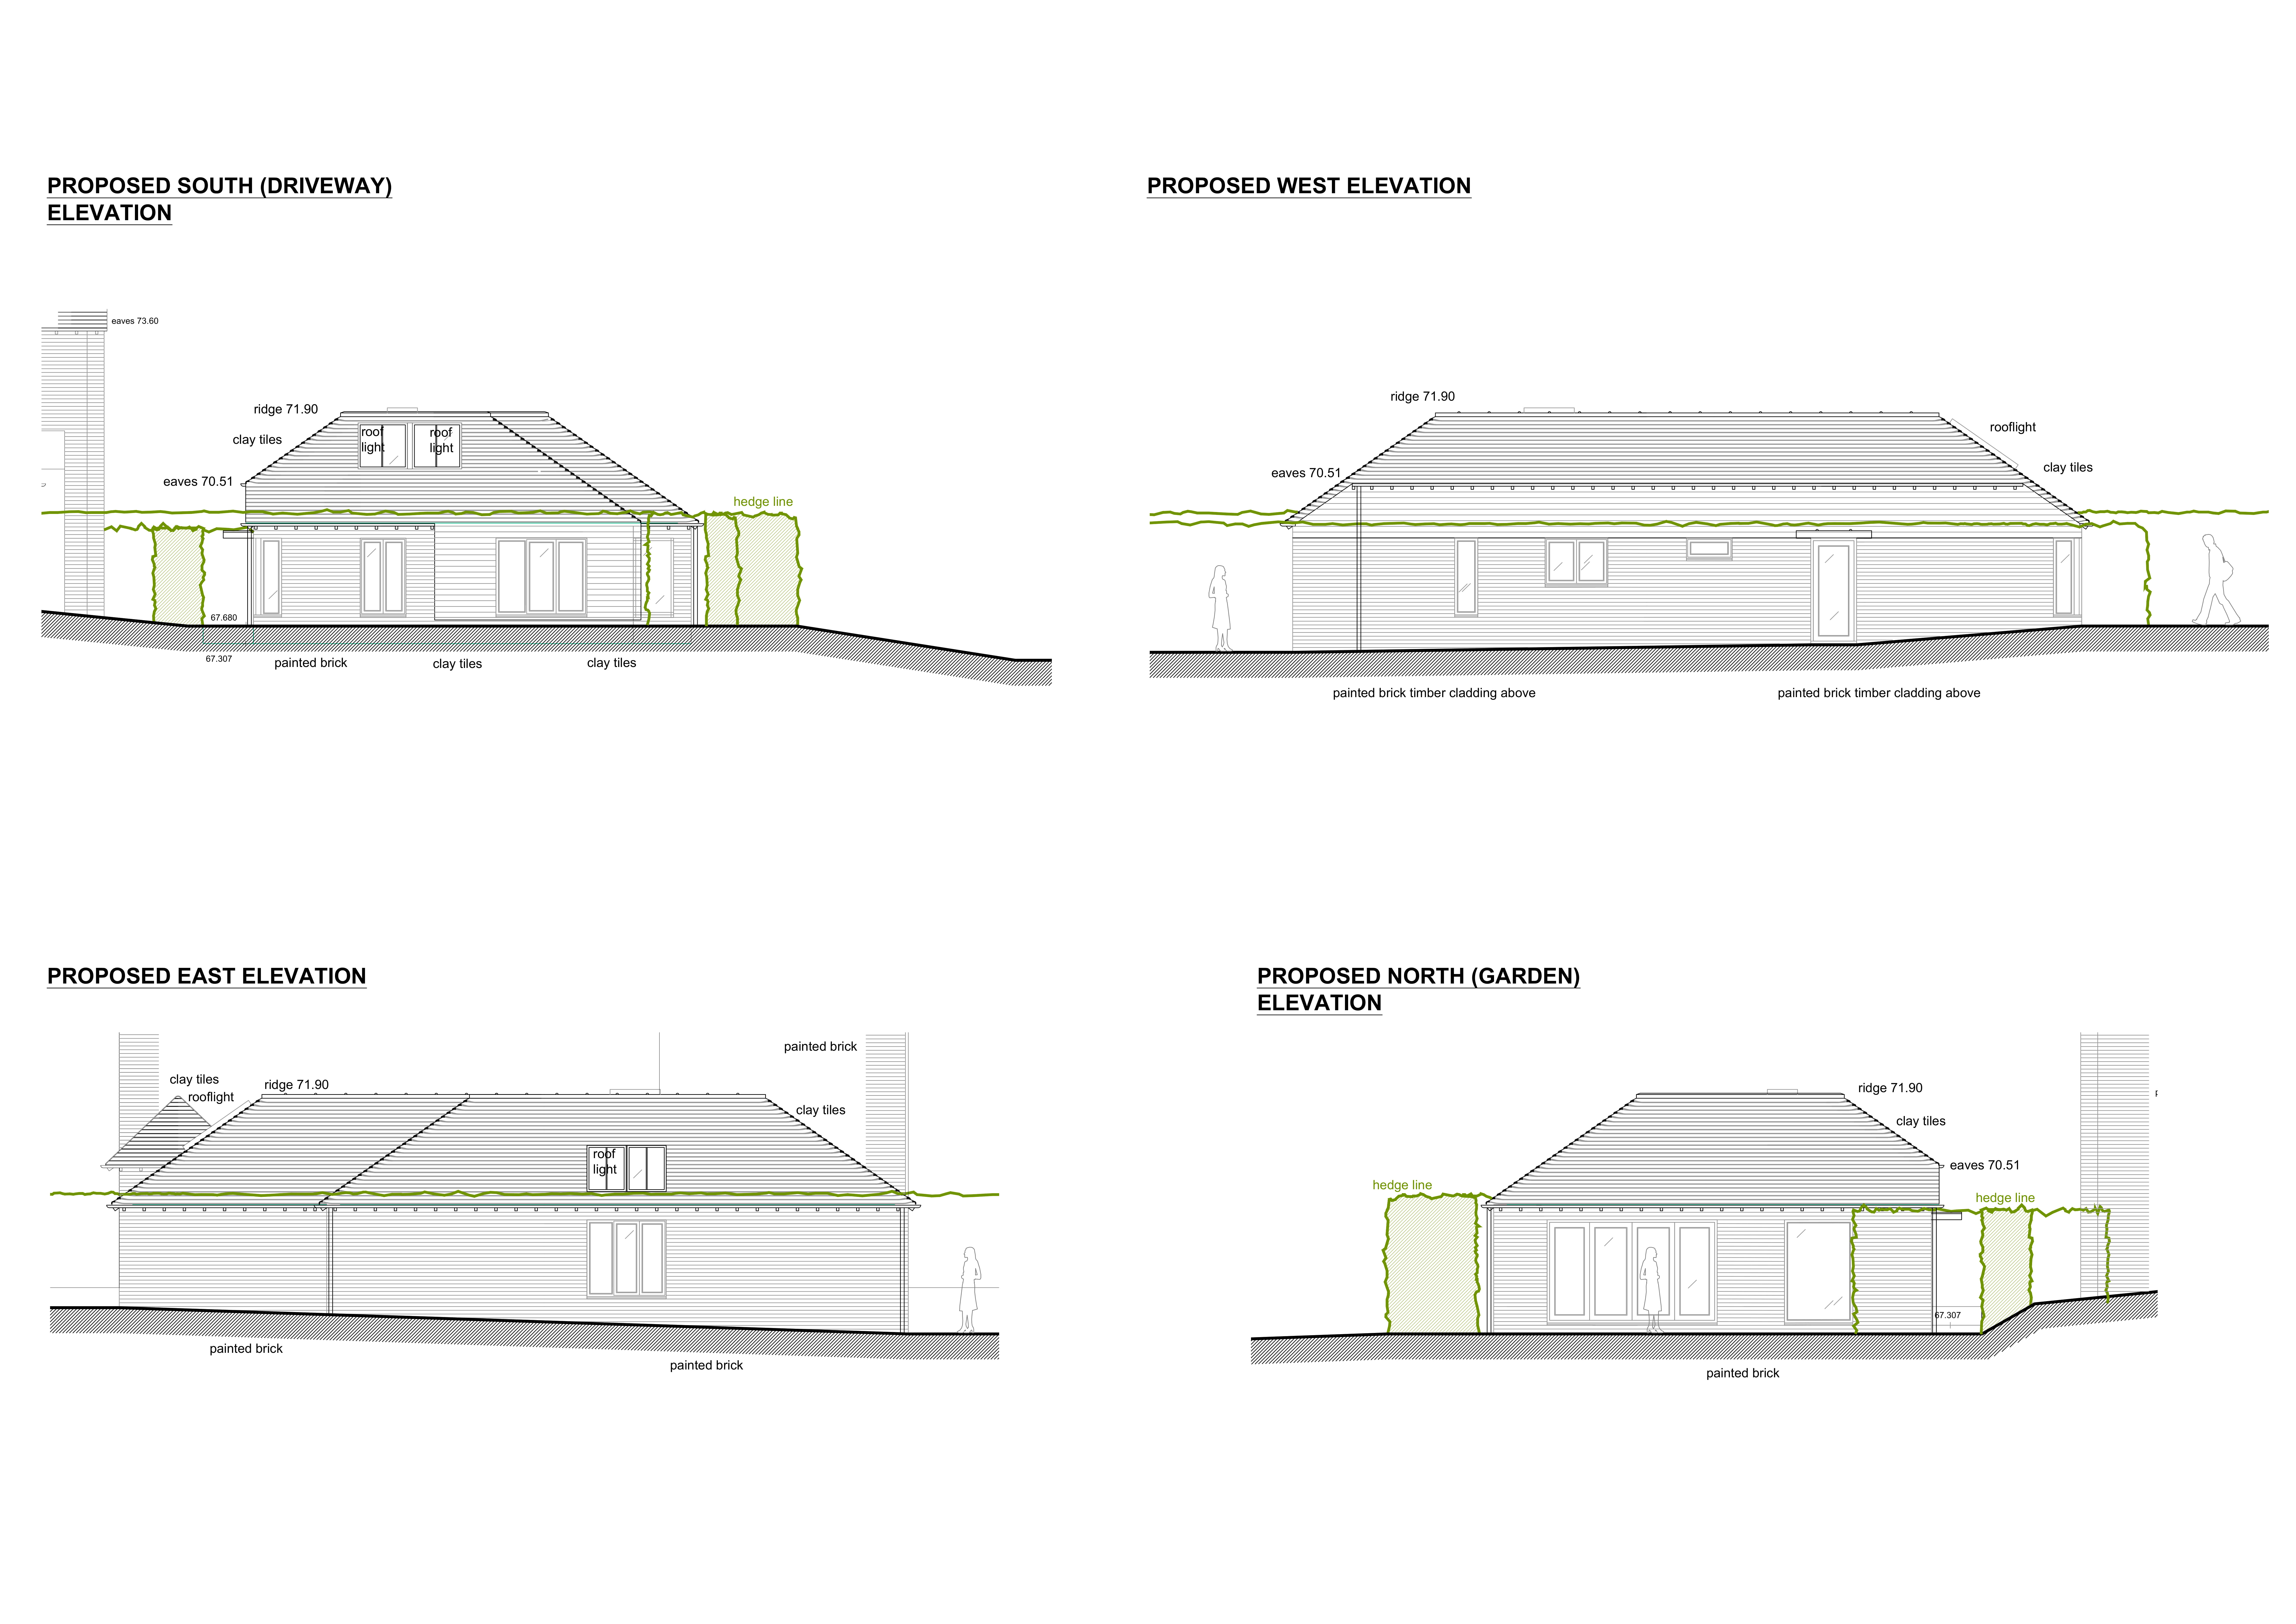 Dorking Elevations